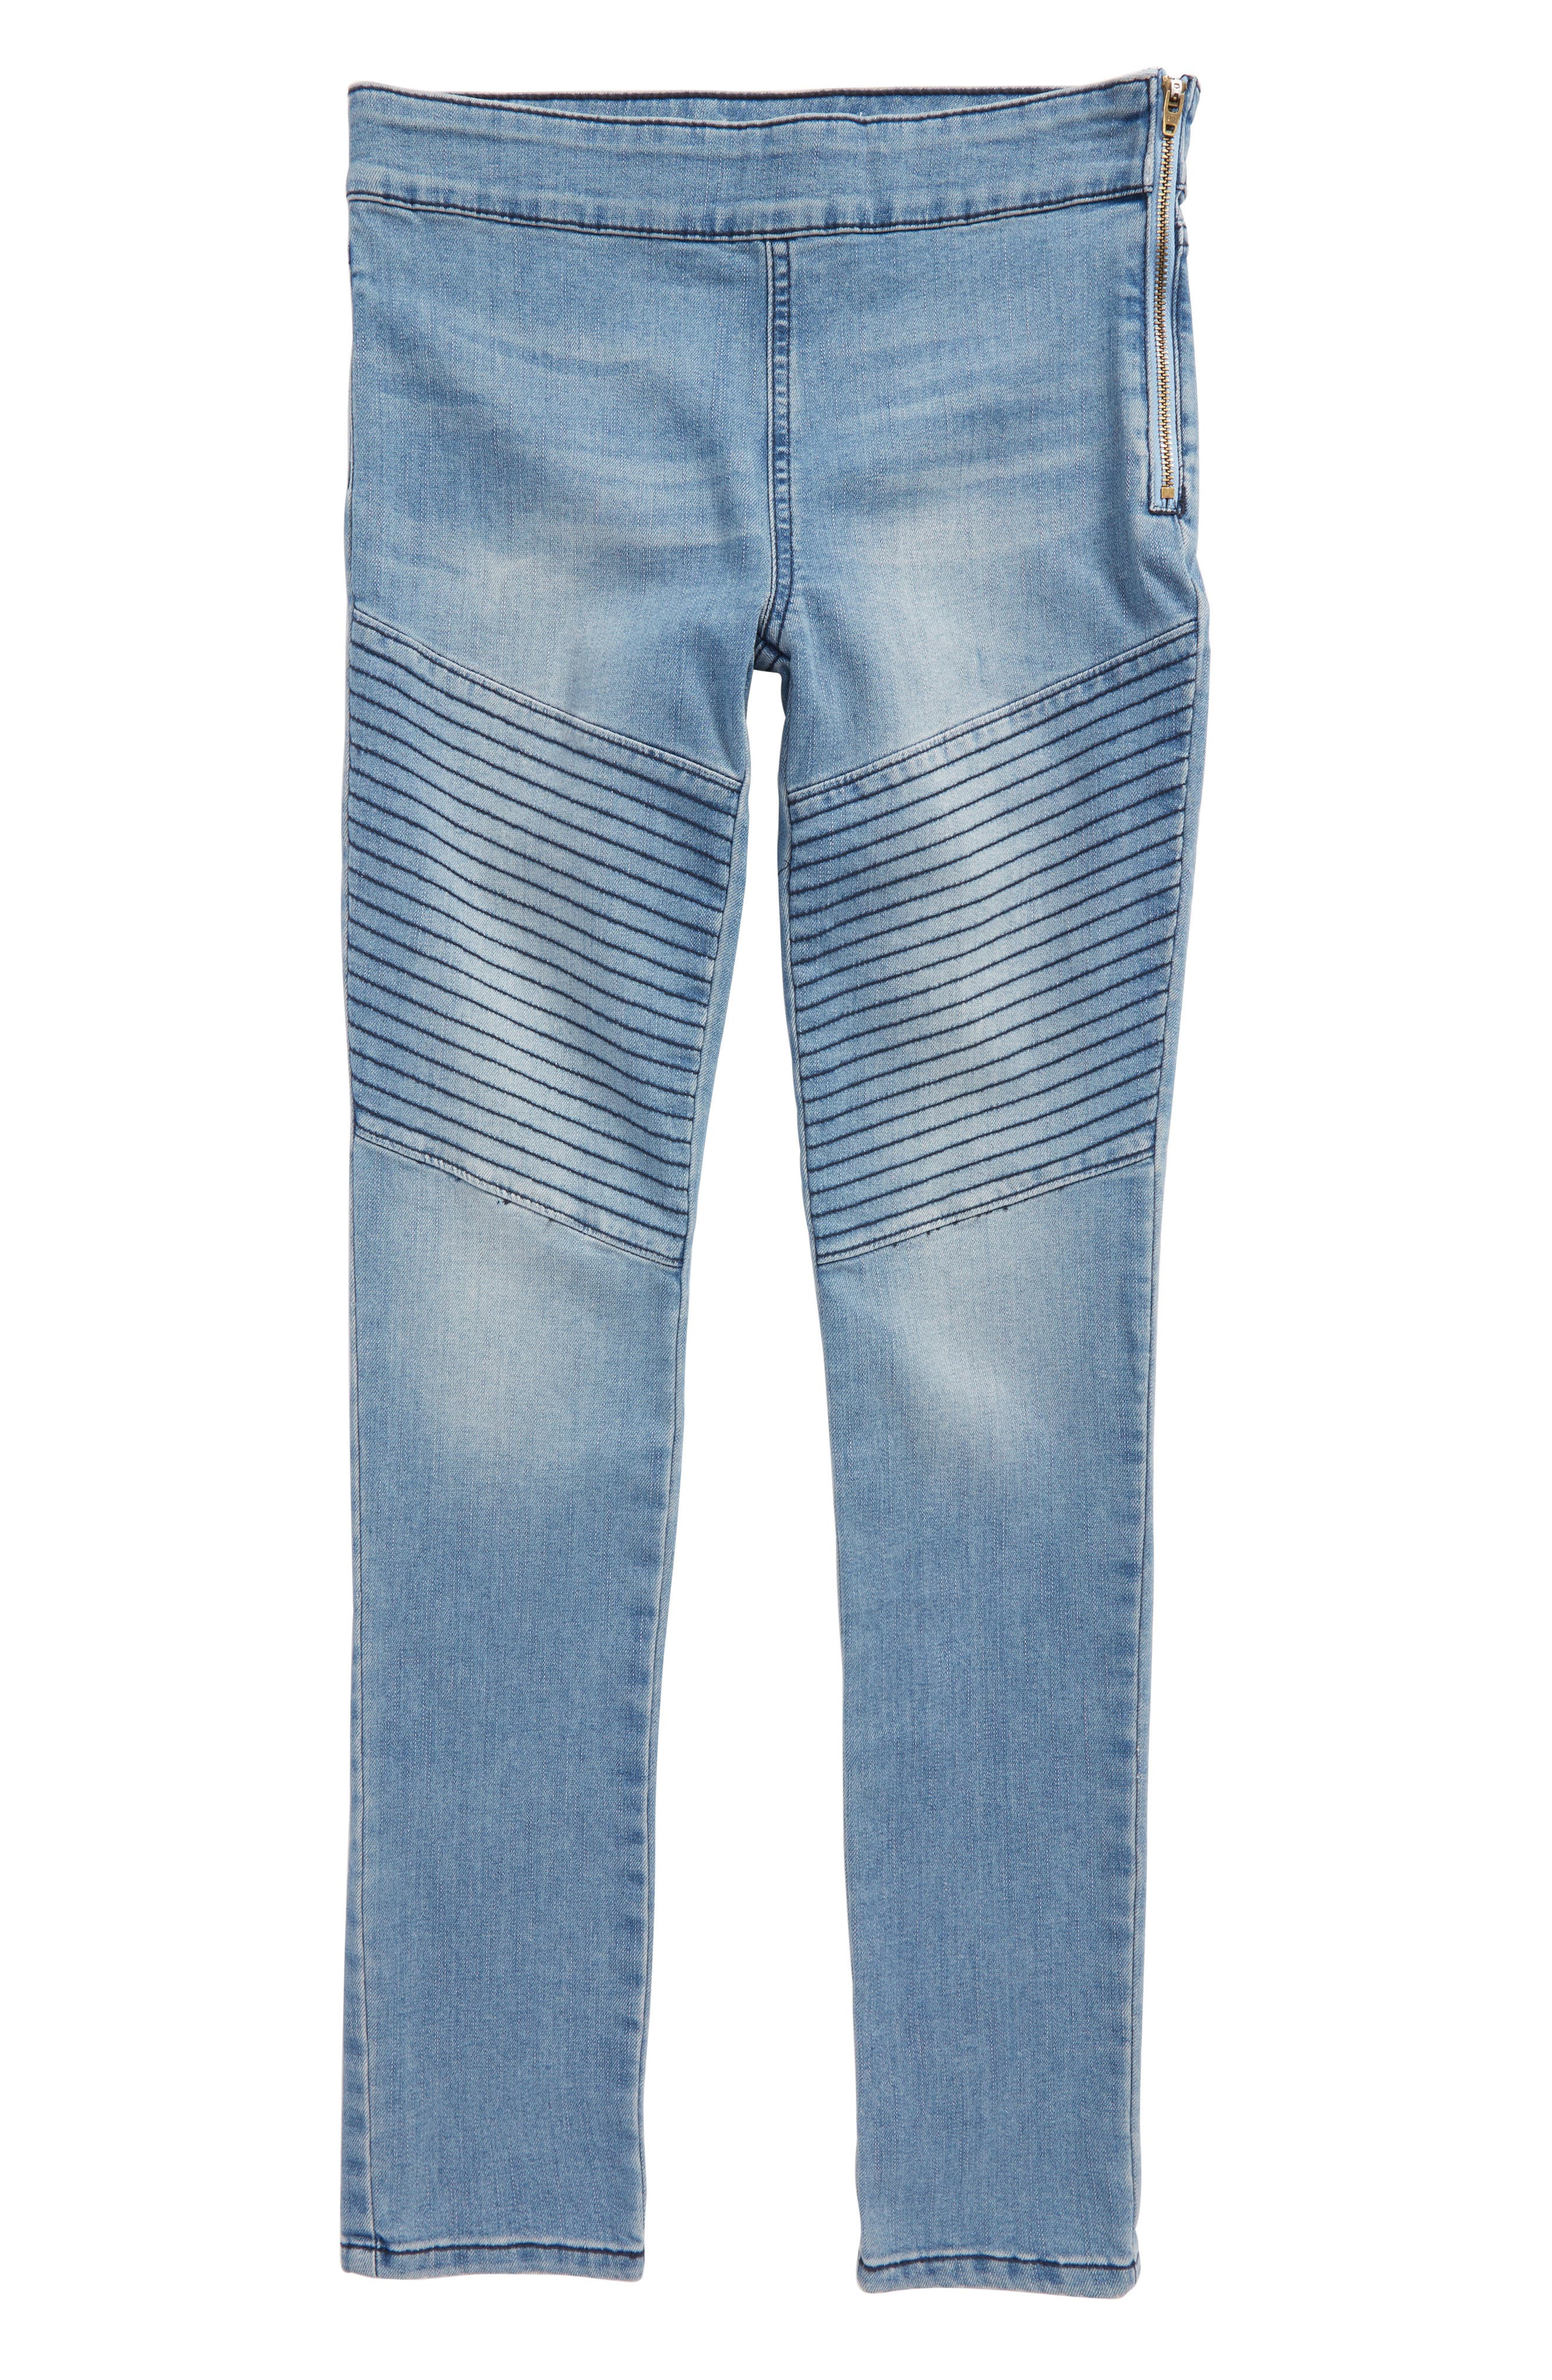 Tucker + Tate Denim Moto Leggings (Big Girls)